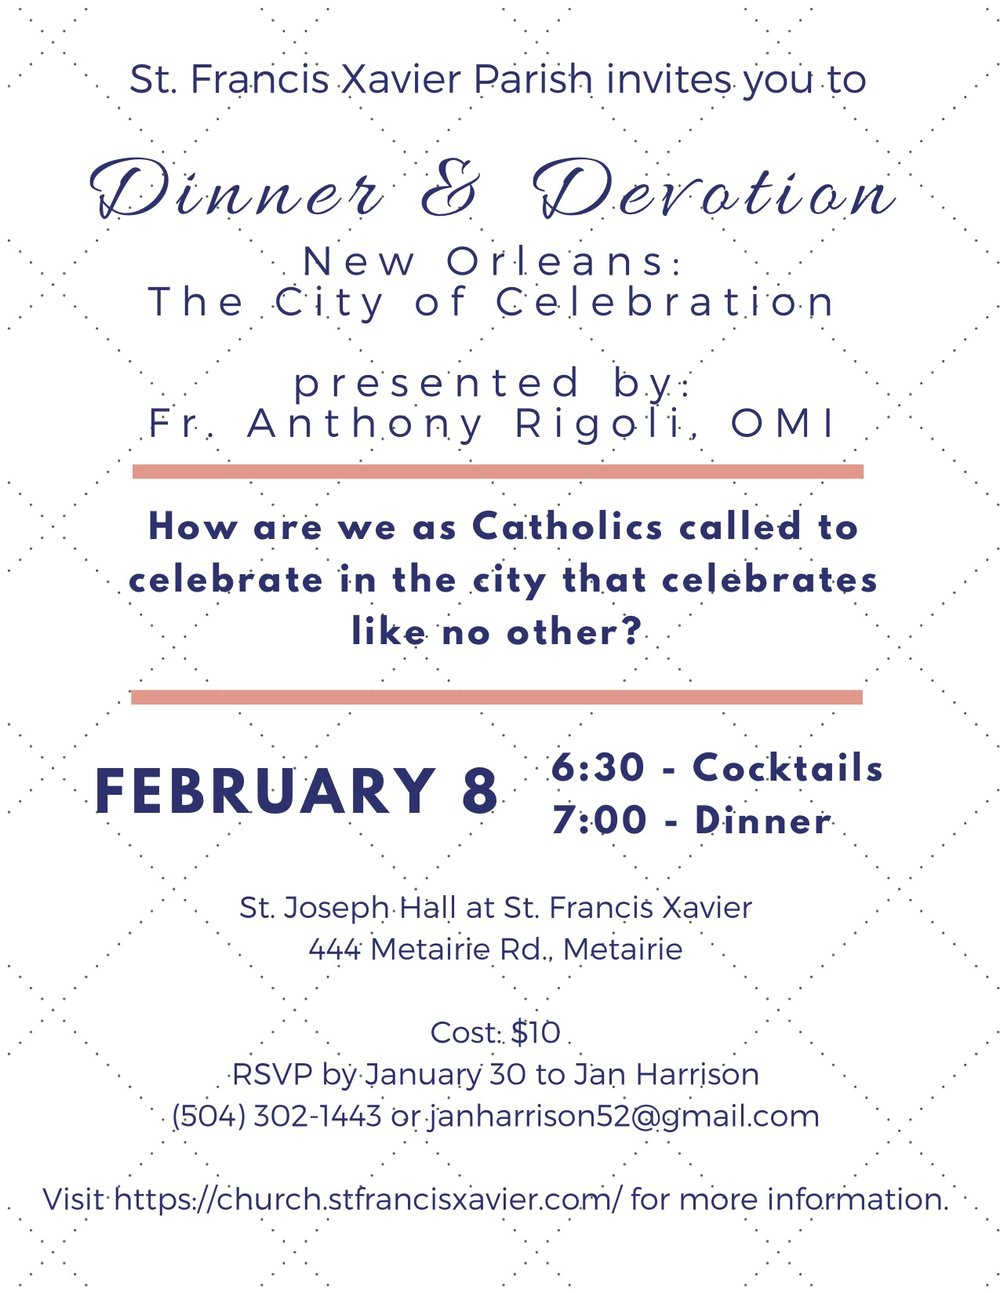 flyer - Dinner & Devotion - Spring 2019 rsvp update.jpg